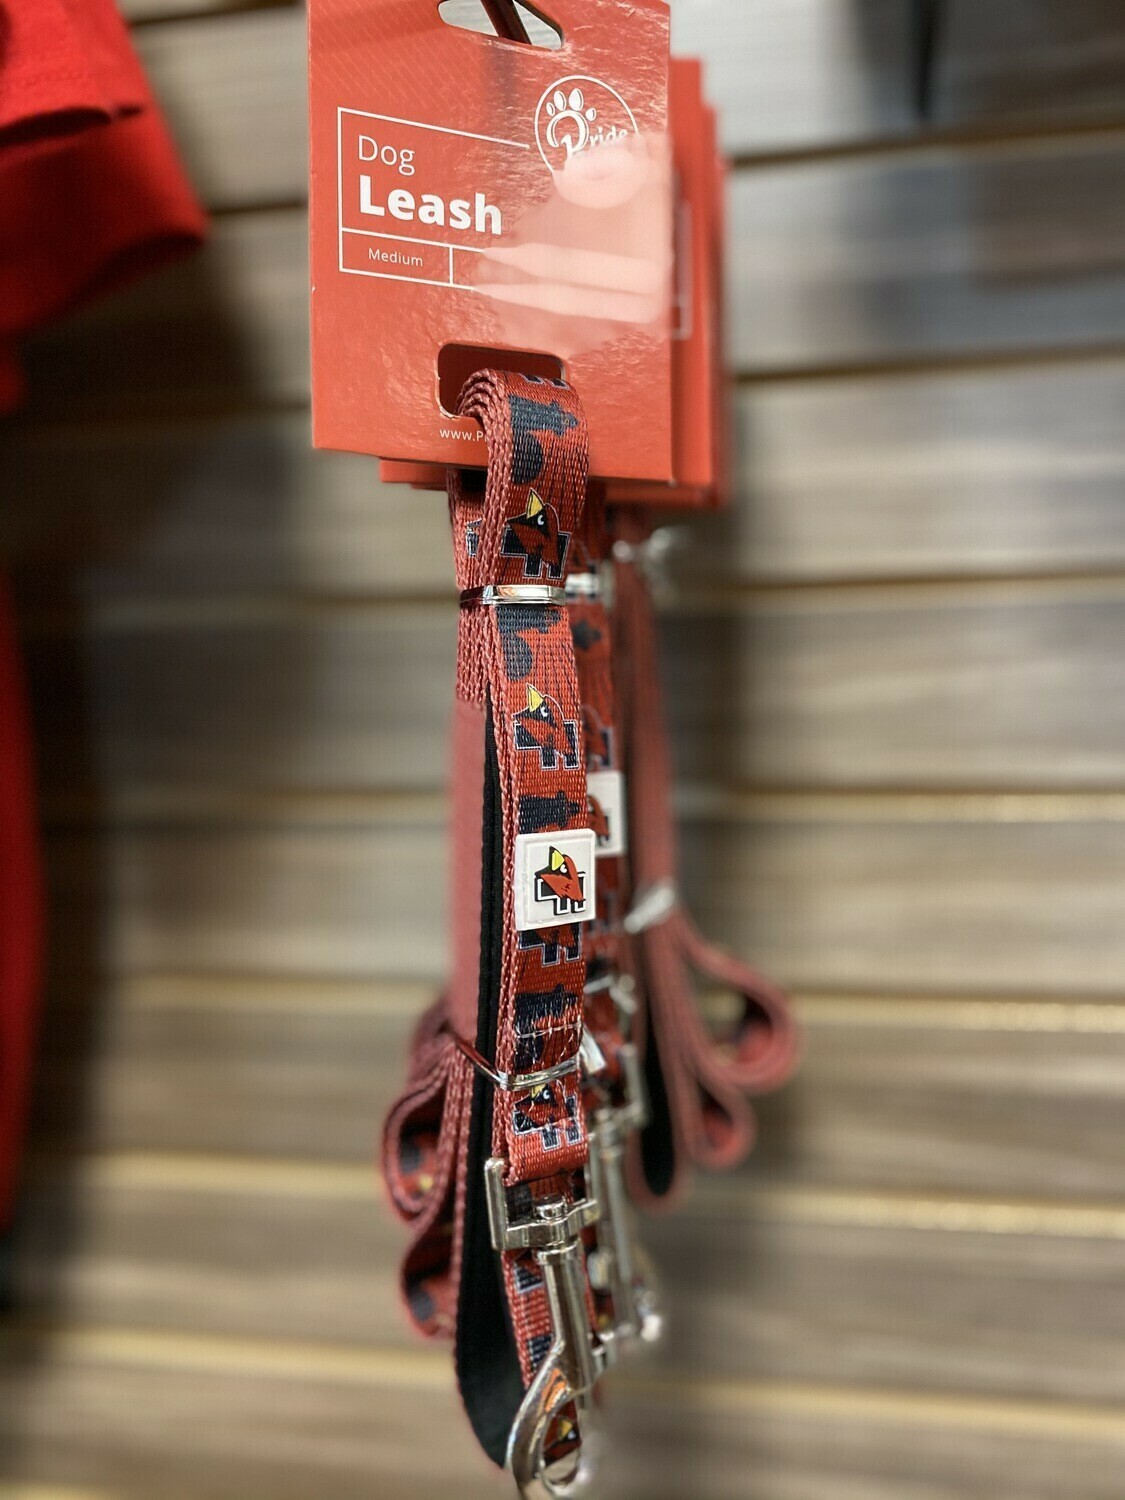 Pride Bites Red Dog Leash (Medium)